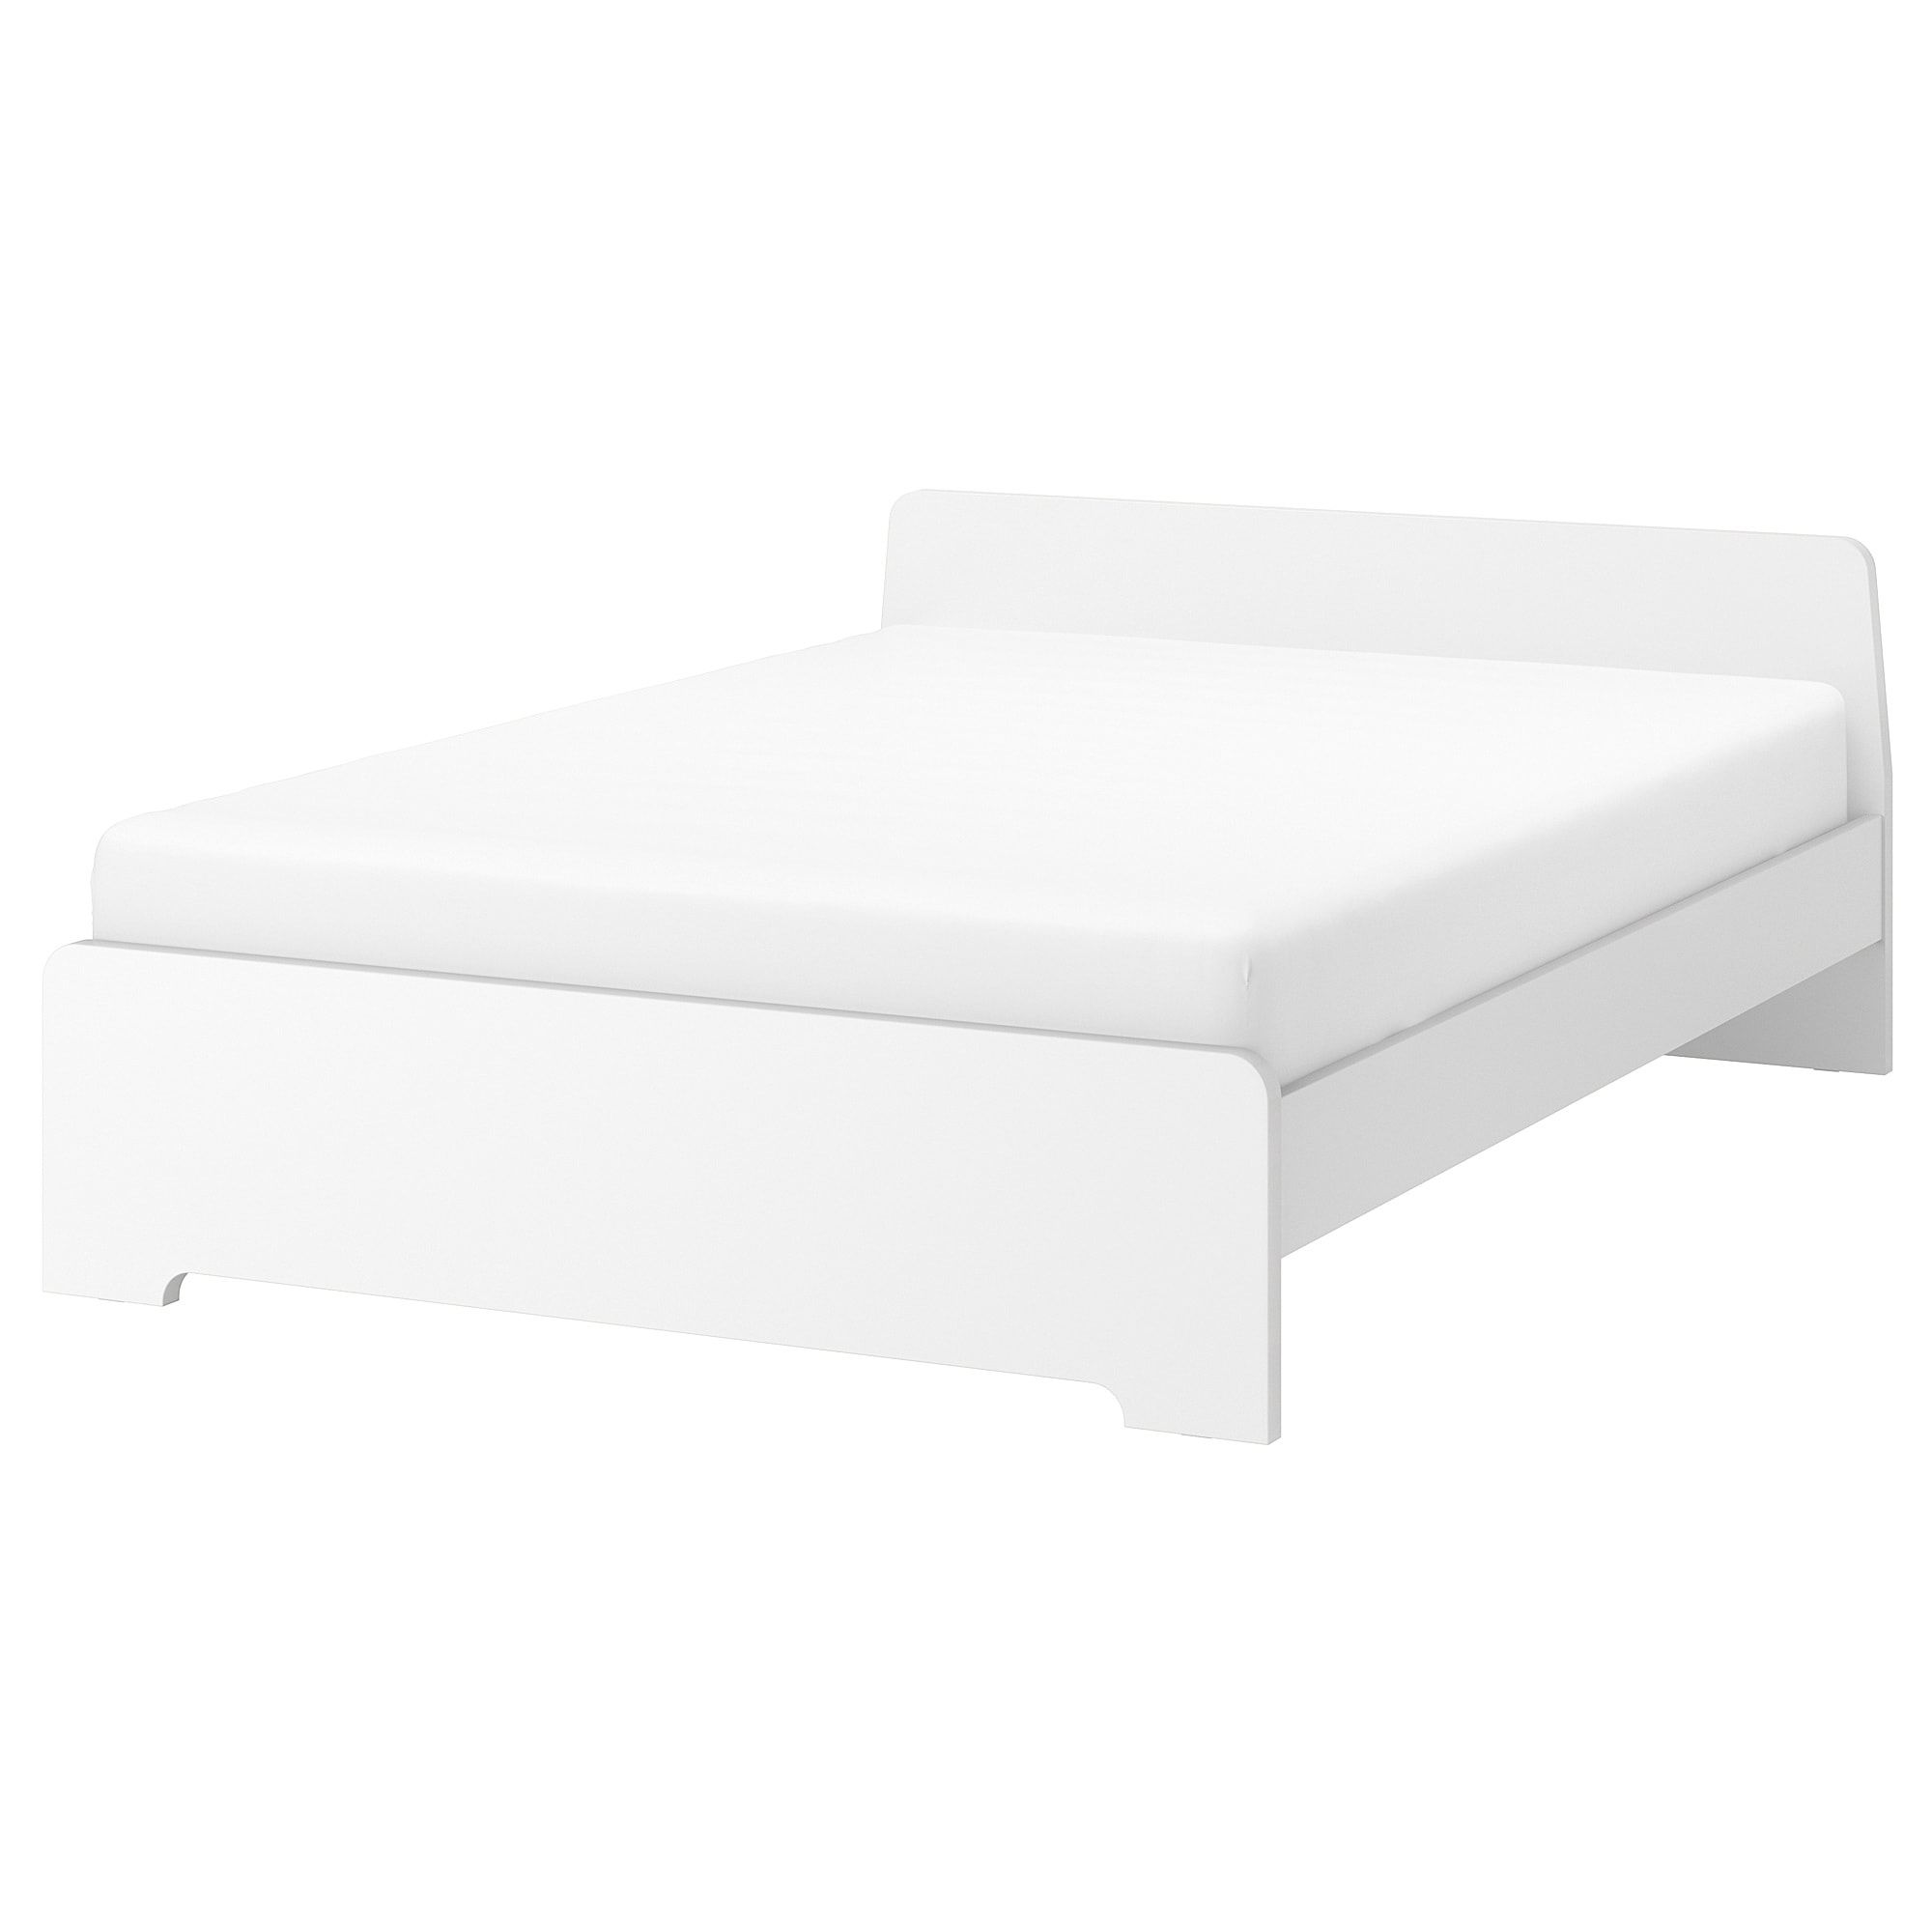 Us Furniture And Home Furnishings In 2019 Bed Frame With Storage Malm Bed Frame Ikea Bed Frames